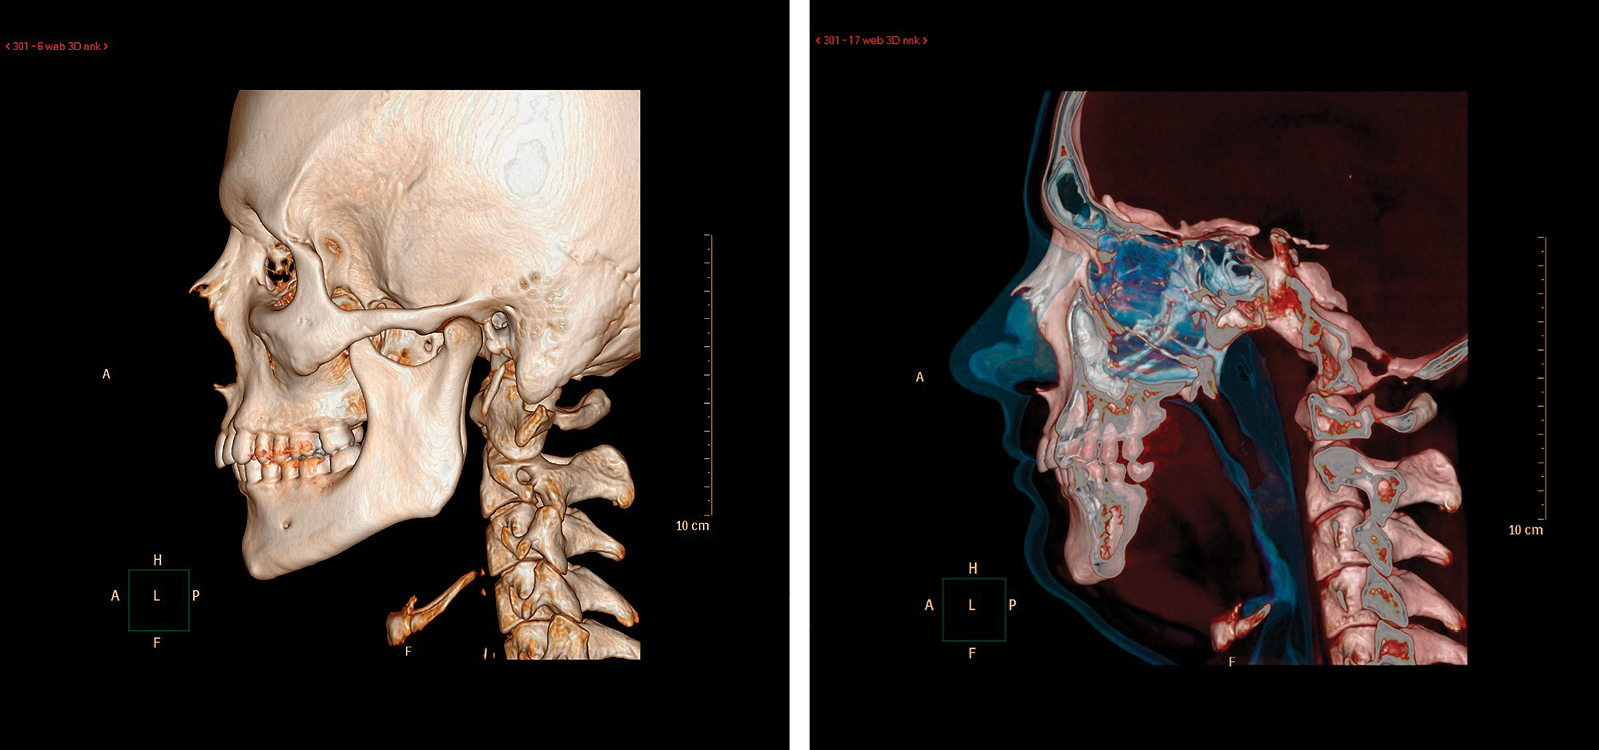 Sleep Apnea CT